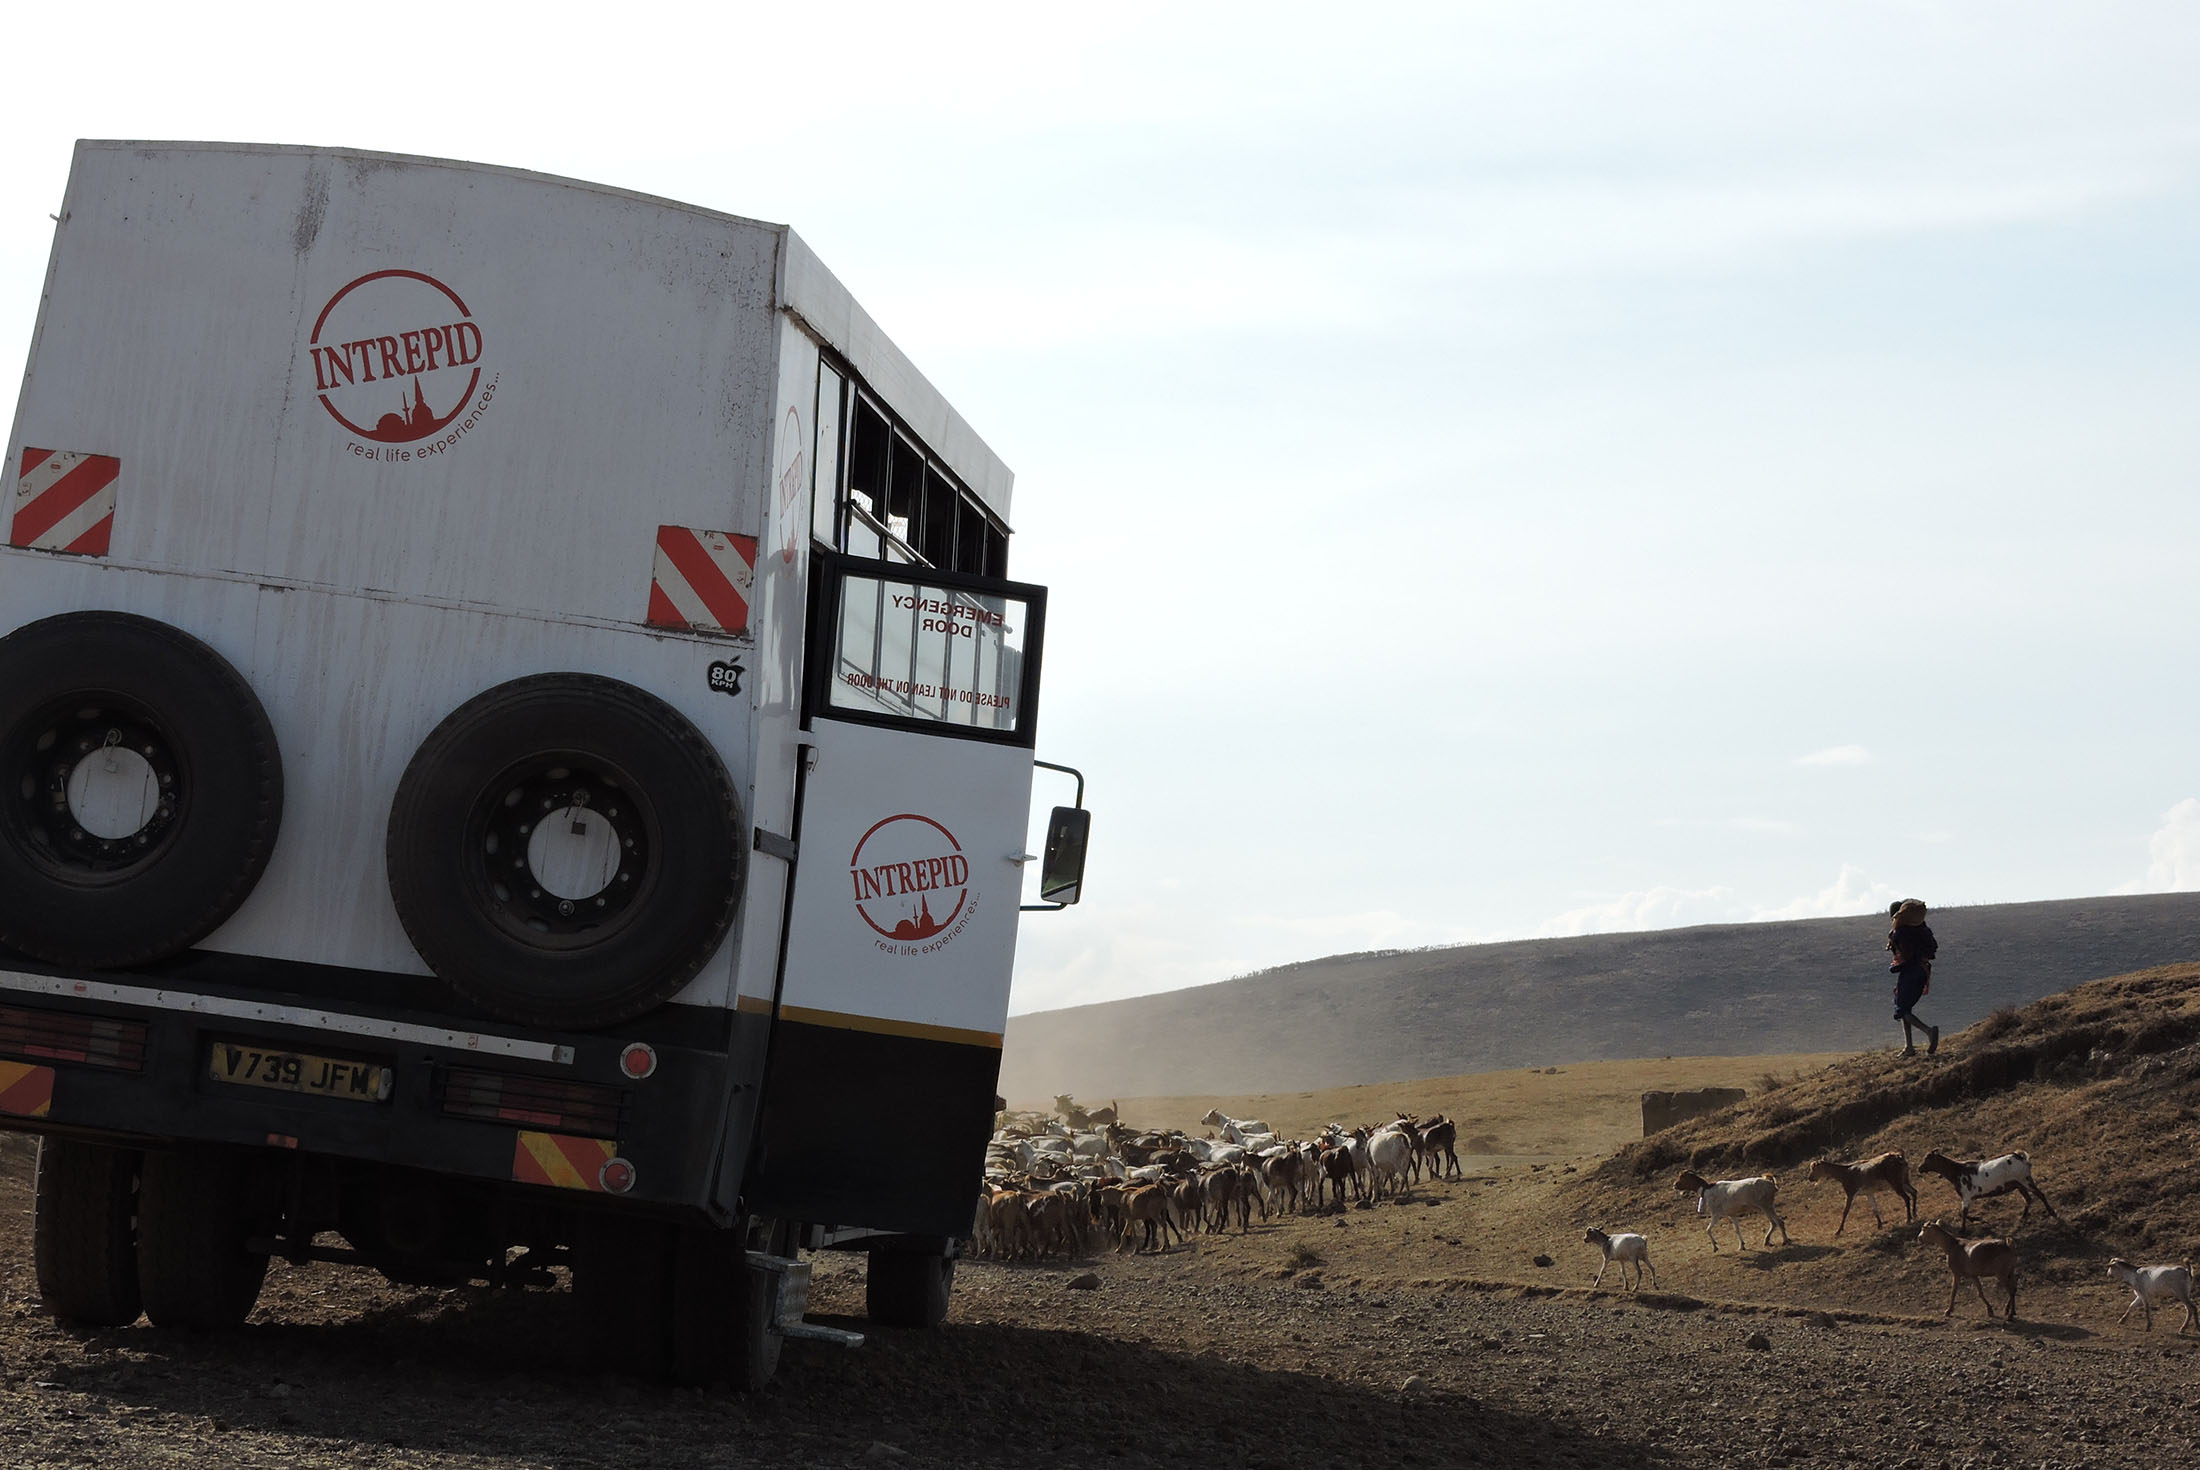 Kenya to Cape Town 3